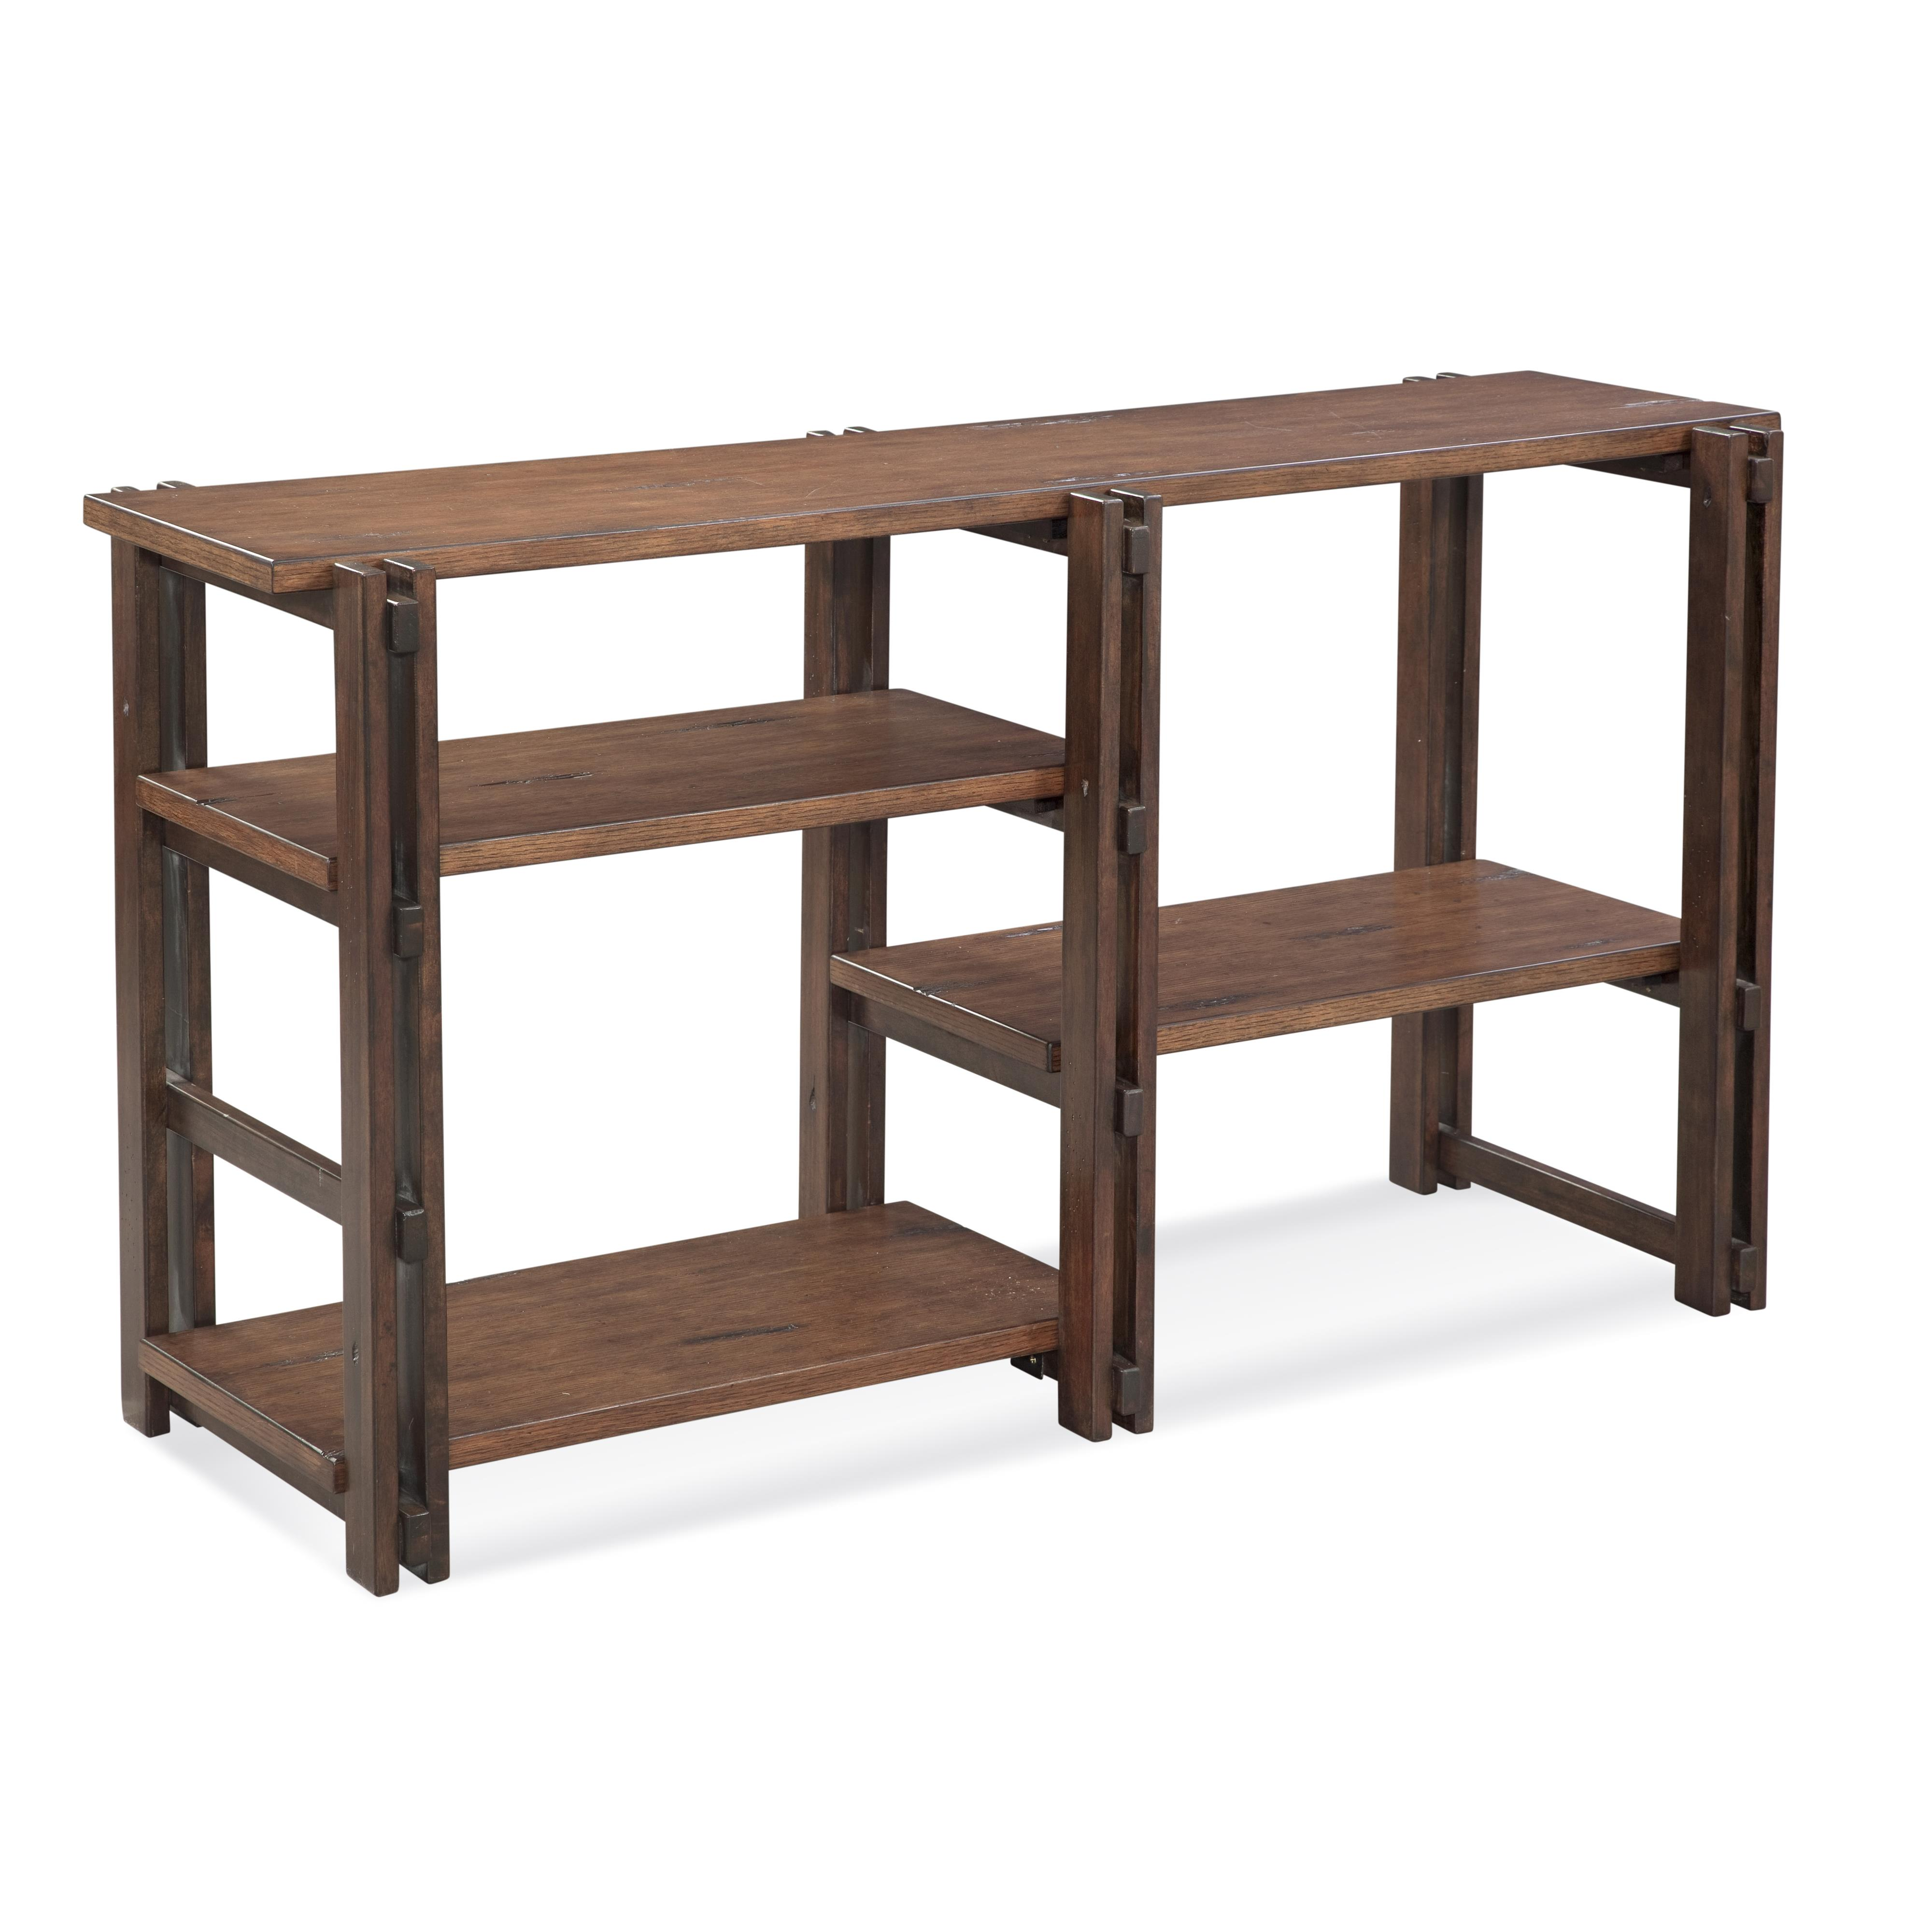 Home Accents Holbrook Console by Bassett Mirror at Alison Craig Home Furnishings